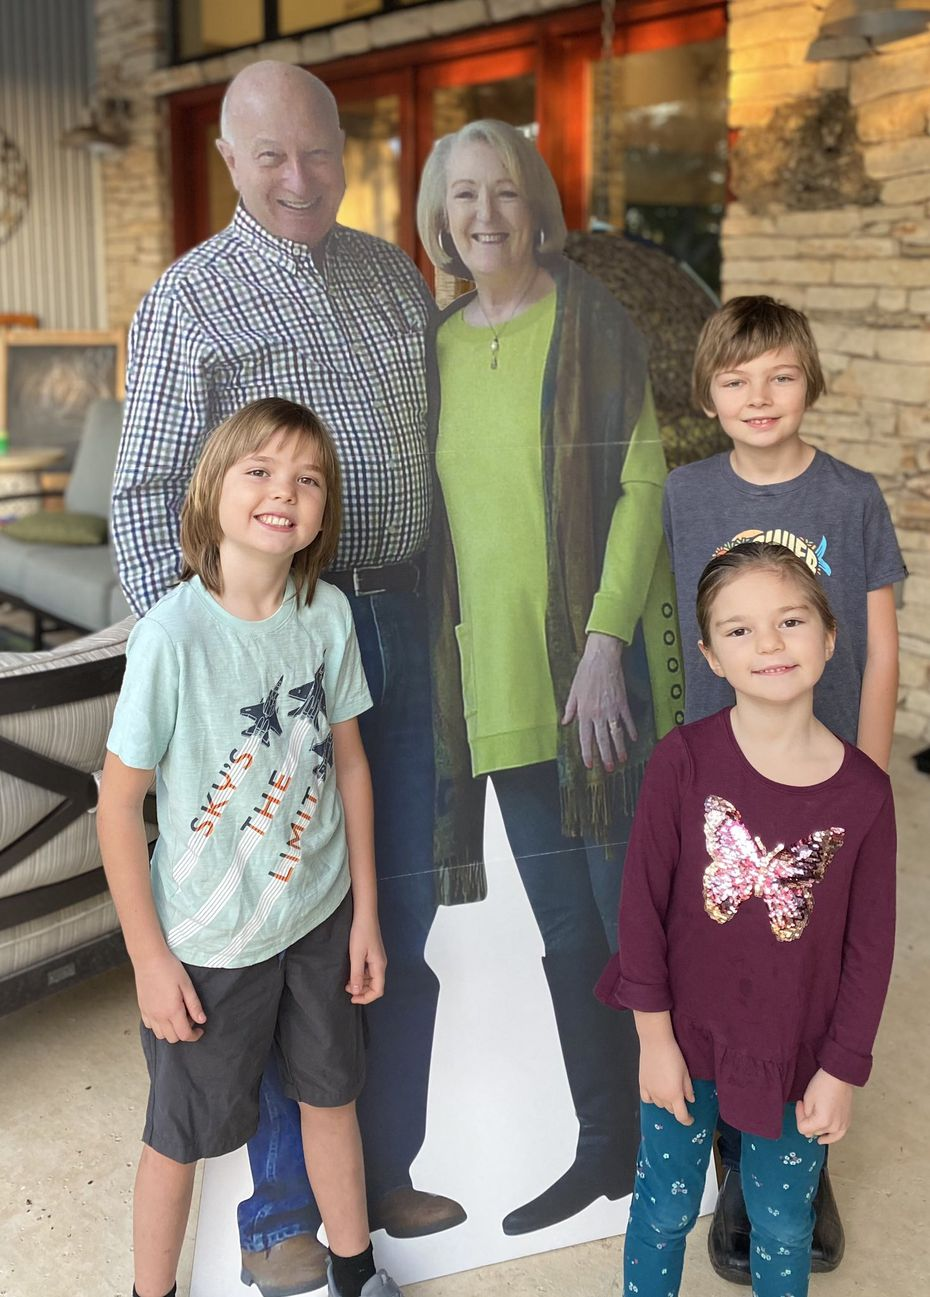 After deciding not to travel for the holidays, Barry and Missy Buchanan decided to mail out life-size cardboard cutouts of themselves to their grandchildren.